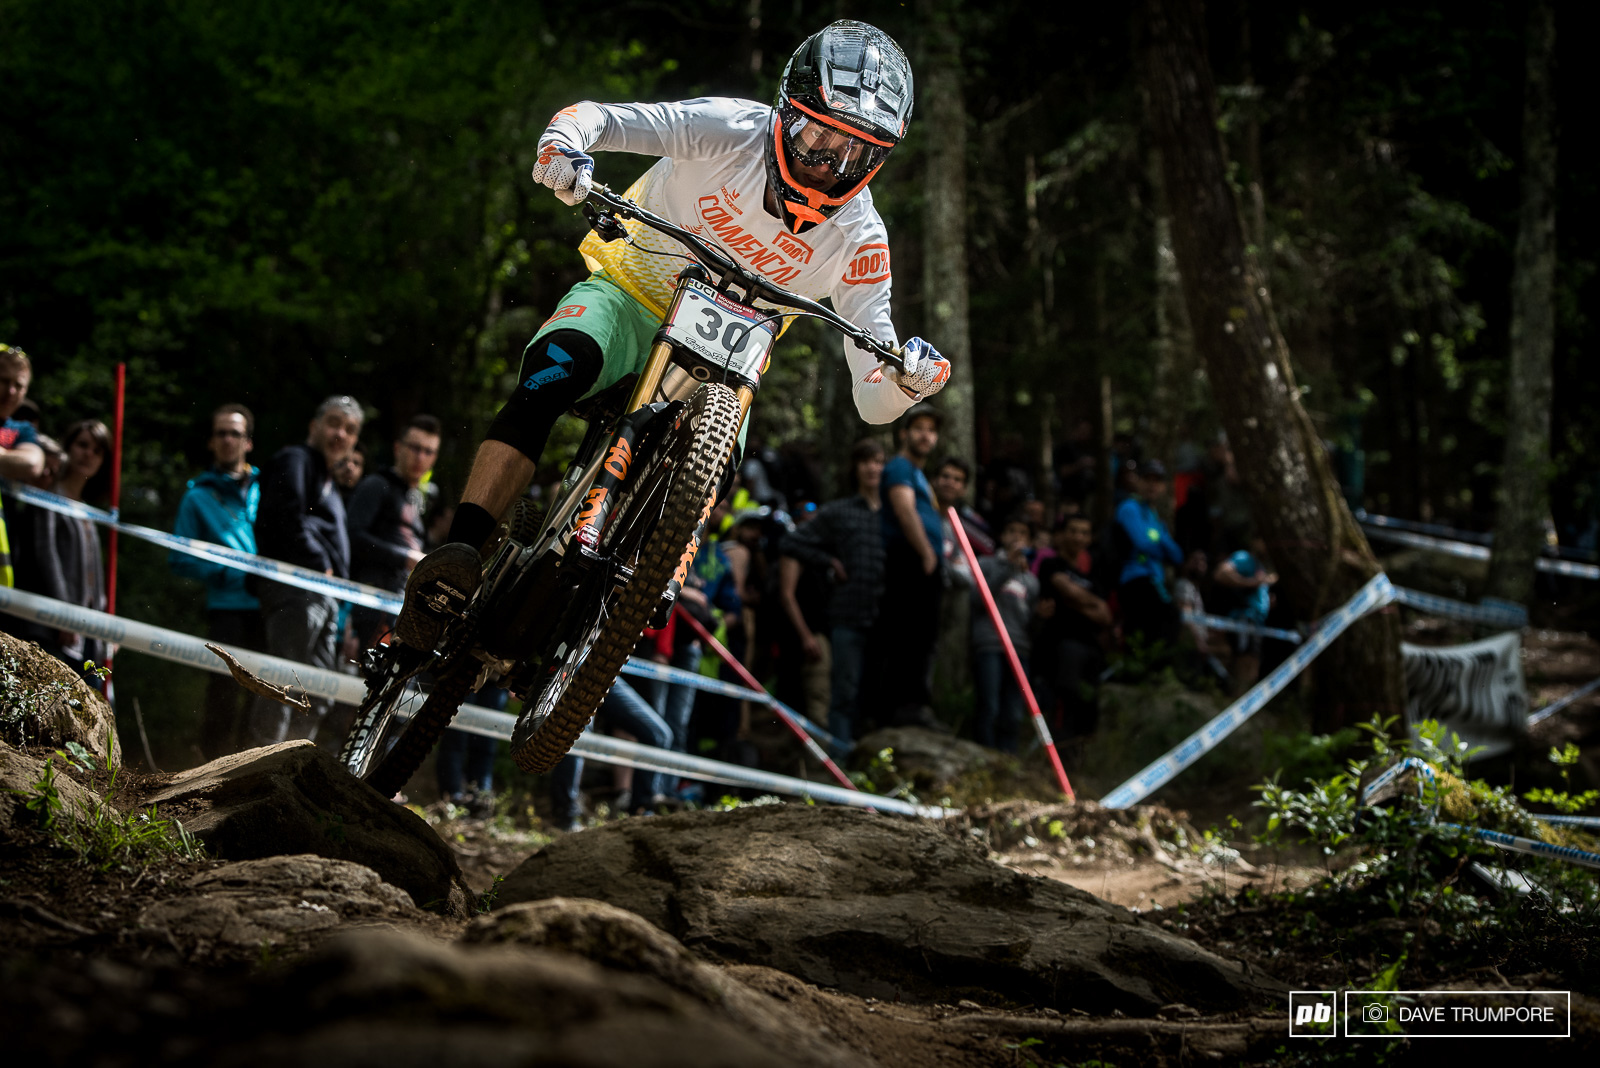 Thomas Estaque is one of the many young French riders who are knocking on the door of the top 10 right now.